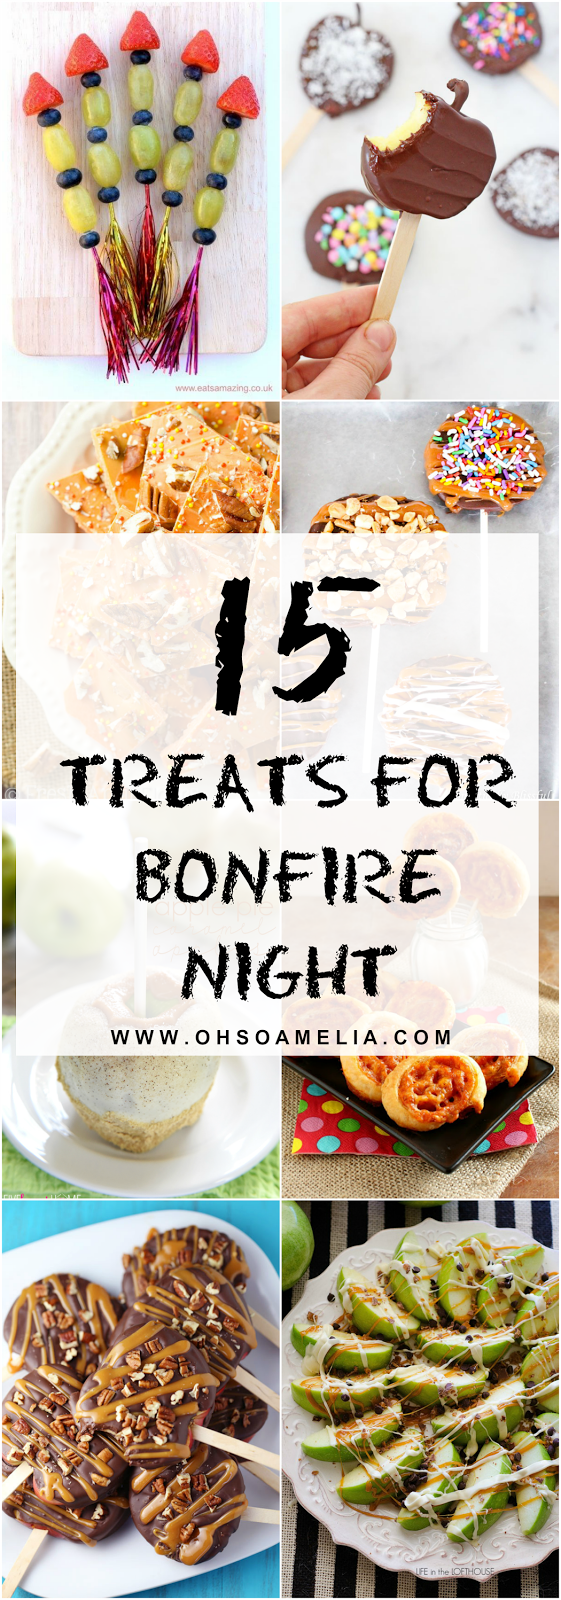 Throwing a Bonfire night party or want to make some treats for the little ones? Take a look at these 15 treat ideas for all the family